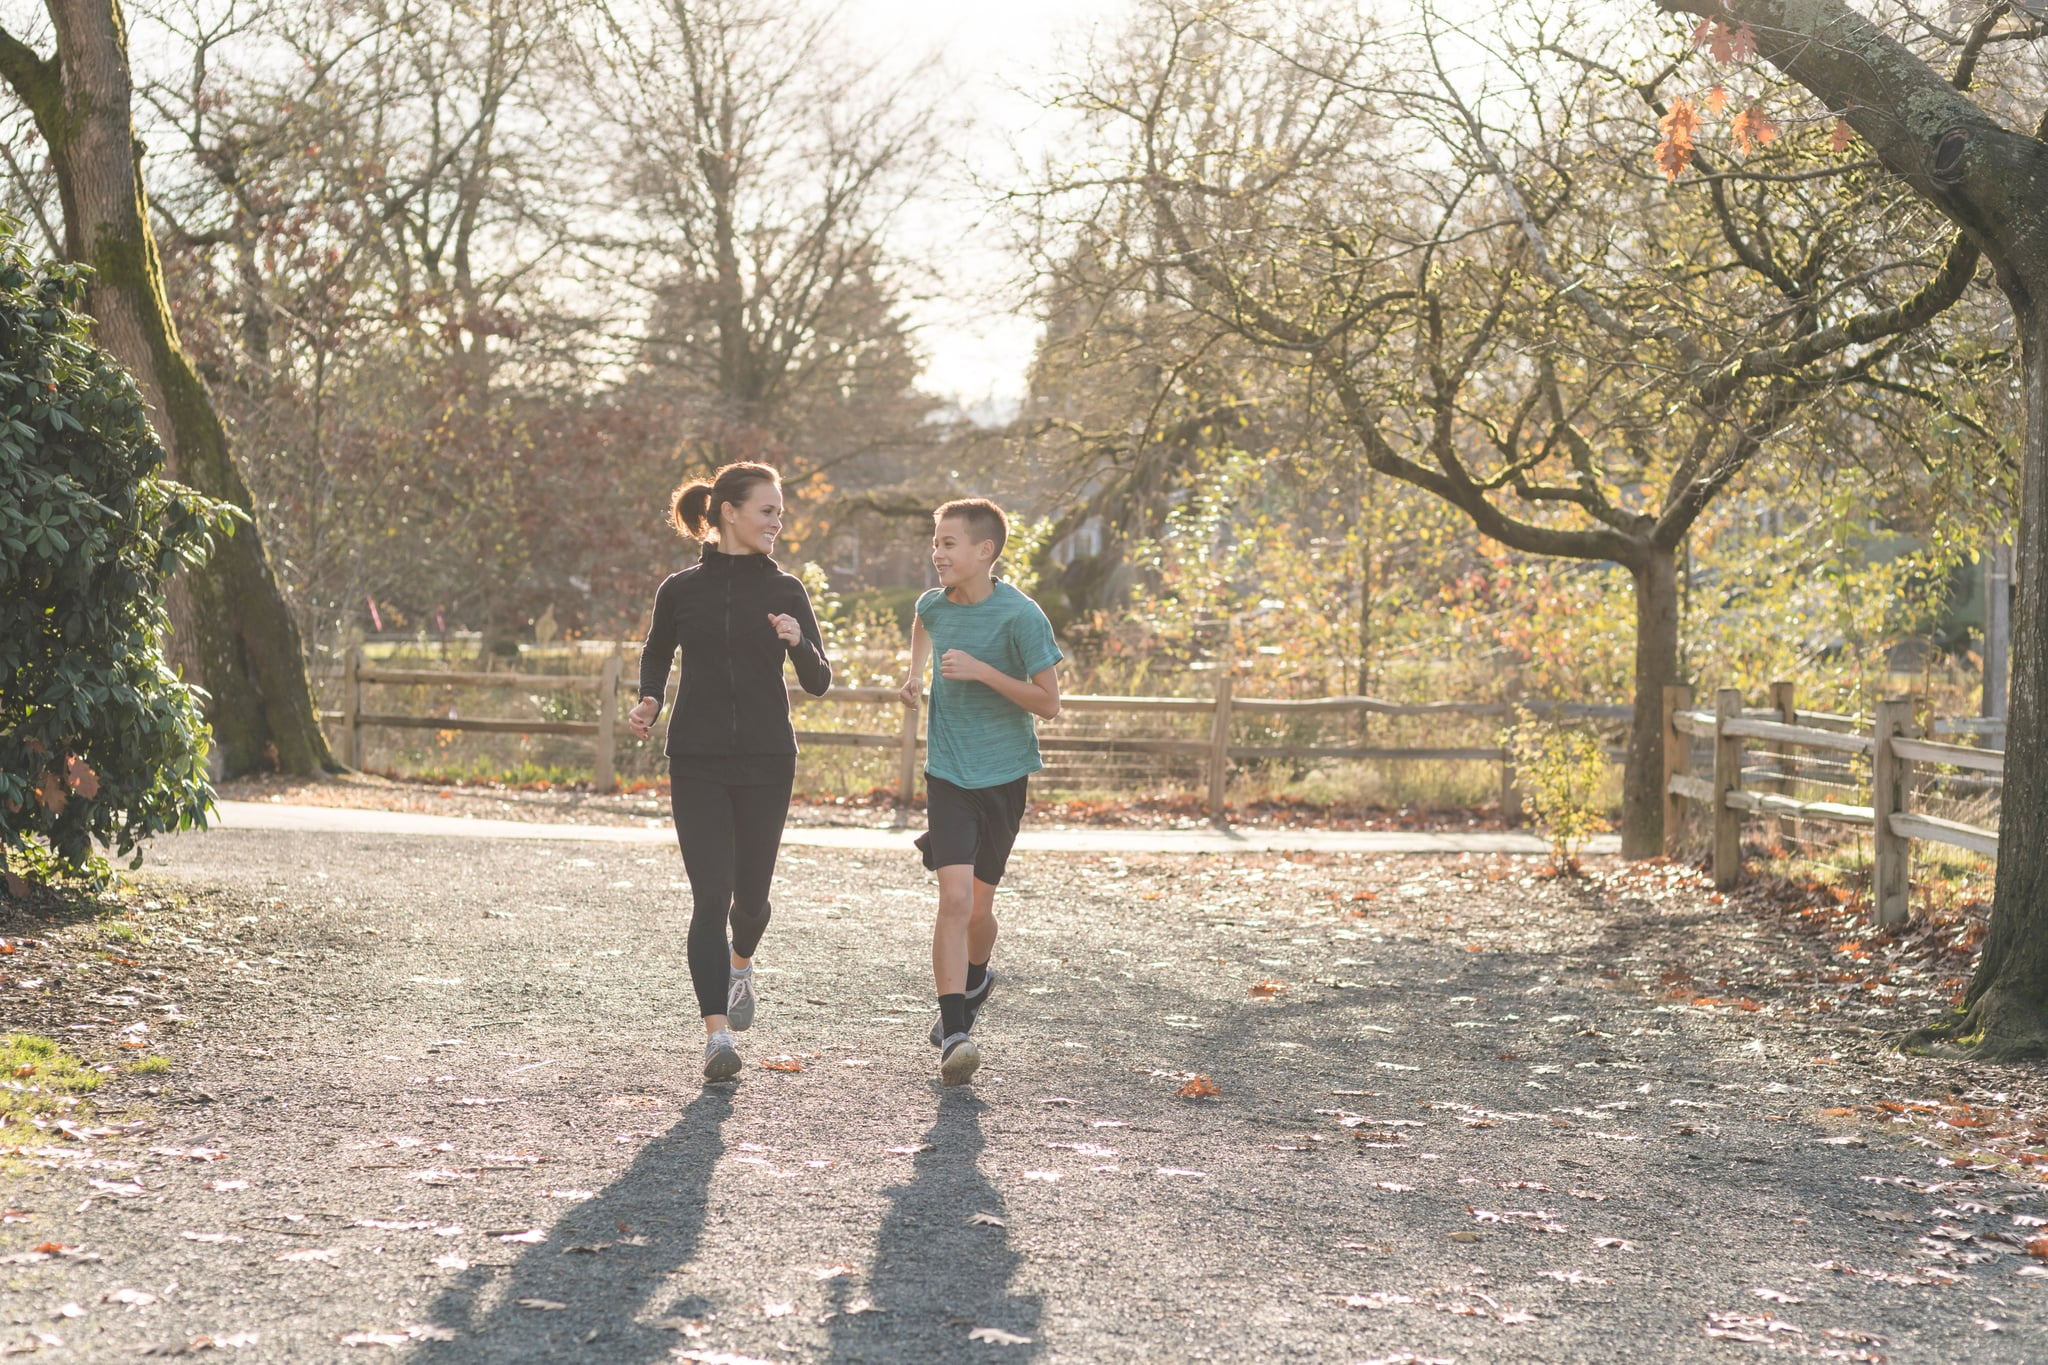 An elementary-age boy goes jogging with his mom in the city park on an autumn morning. They are looking at each other affectionately for a moment as they run. There are leaves scattered on the ground.